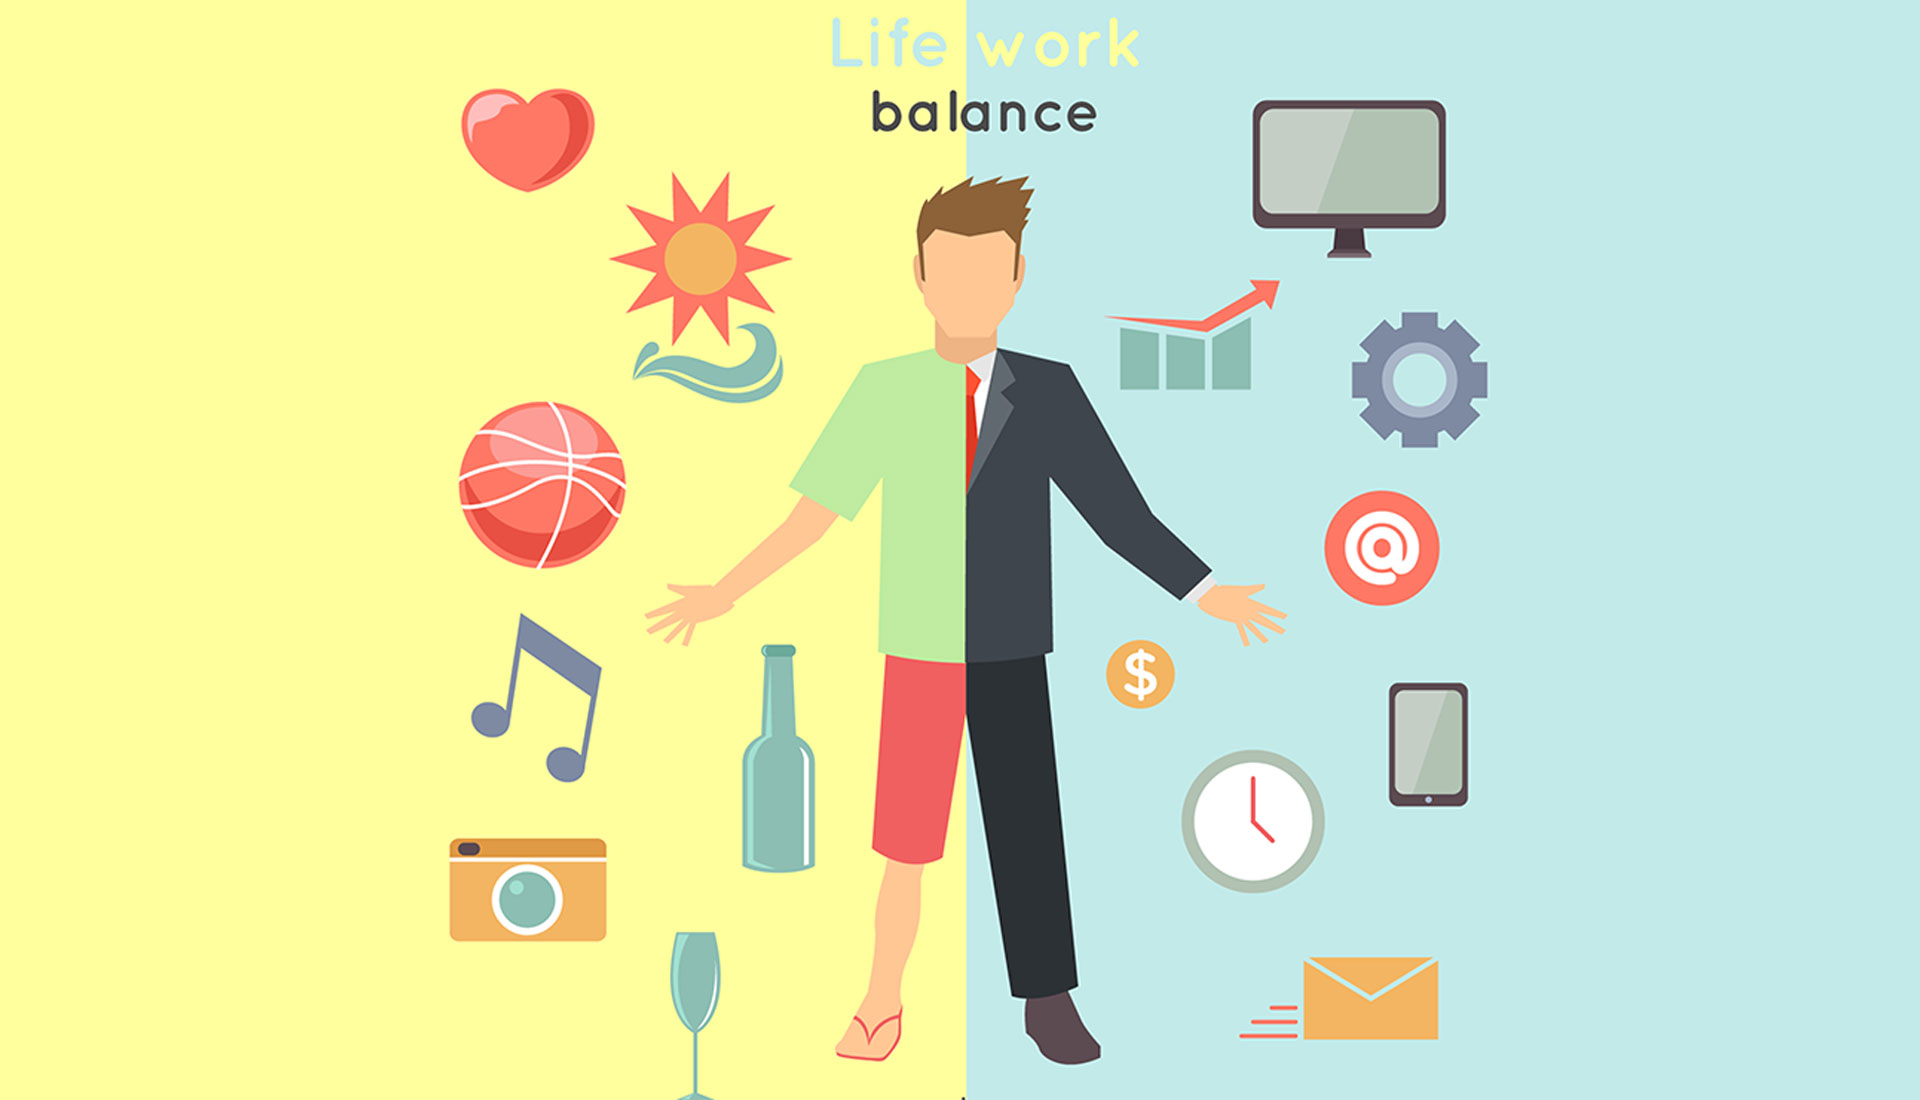 keep-home-and-workspace-separate-to-achieve-true-work-life-balance